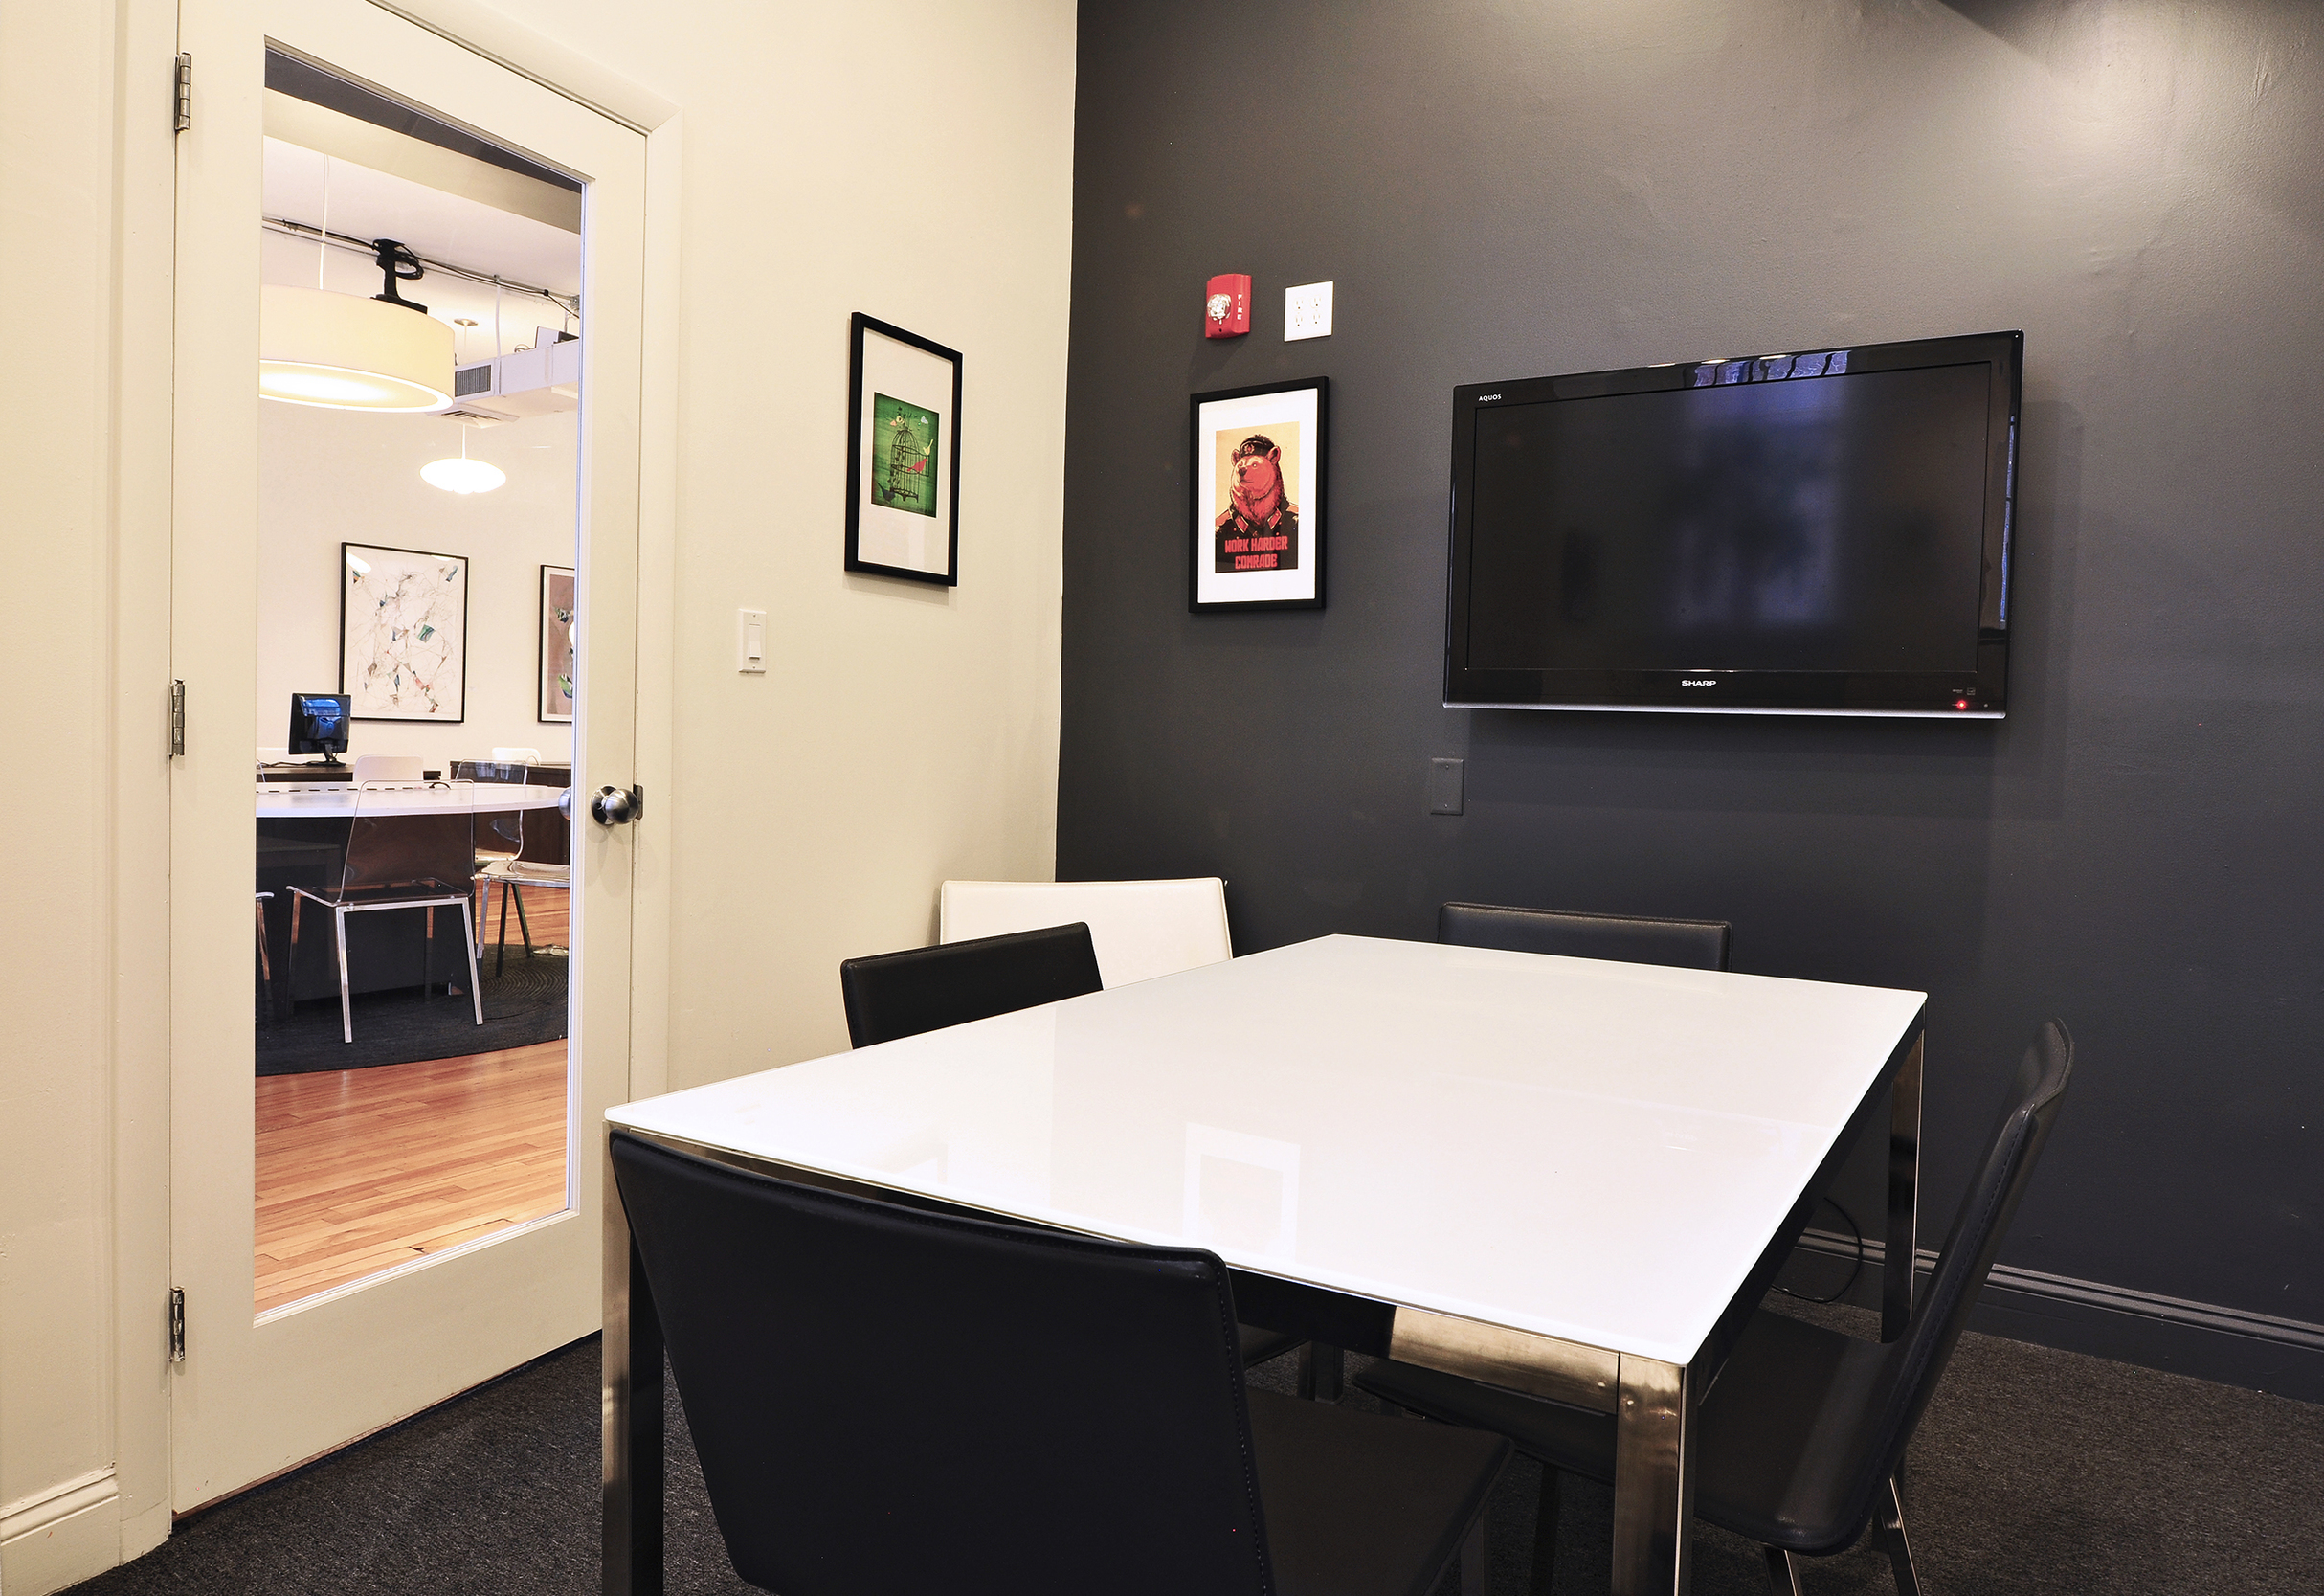 IPSWICH   (Capacity 4 people)   $60 per hour / $180 half day / $280 full day     Includes:  Monitor, Mark-Up Wall, Direct Phone Line  Make a Reservation:  Call (857) 239-9843 or  Email Us   Payment:  50% to hold reservation, 50% day of meeting  Location:  30 Newbury Street, 3rd Floor ( Map )